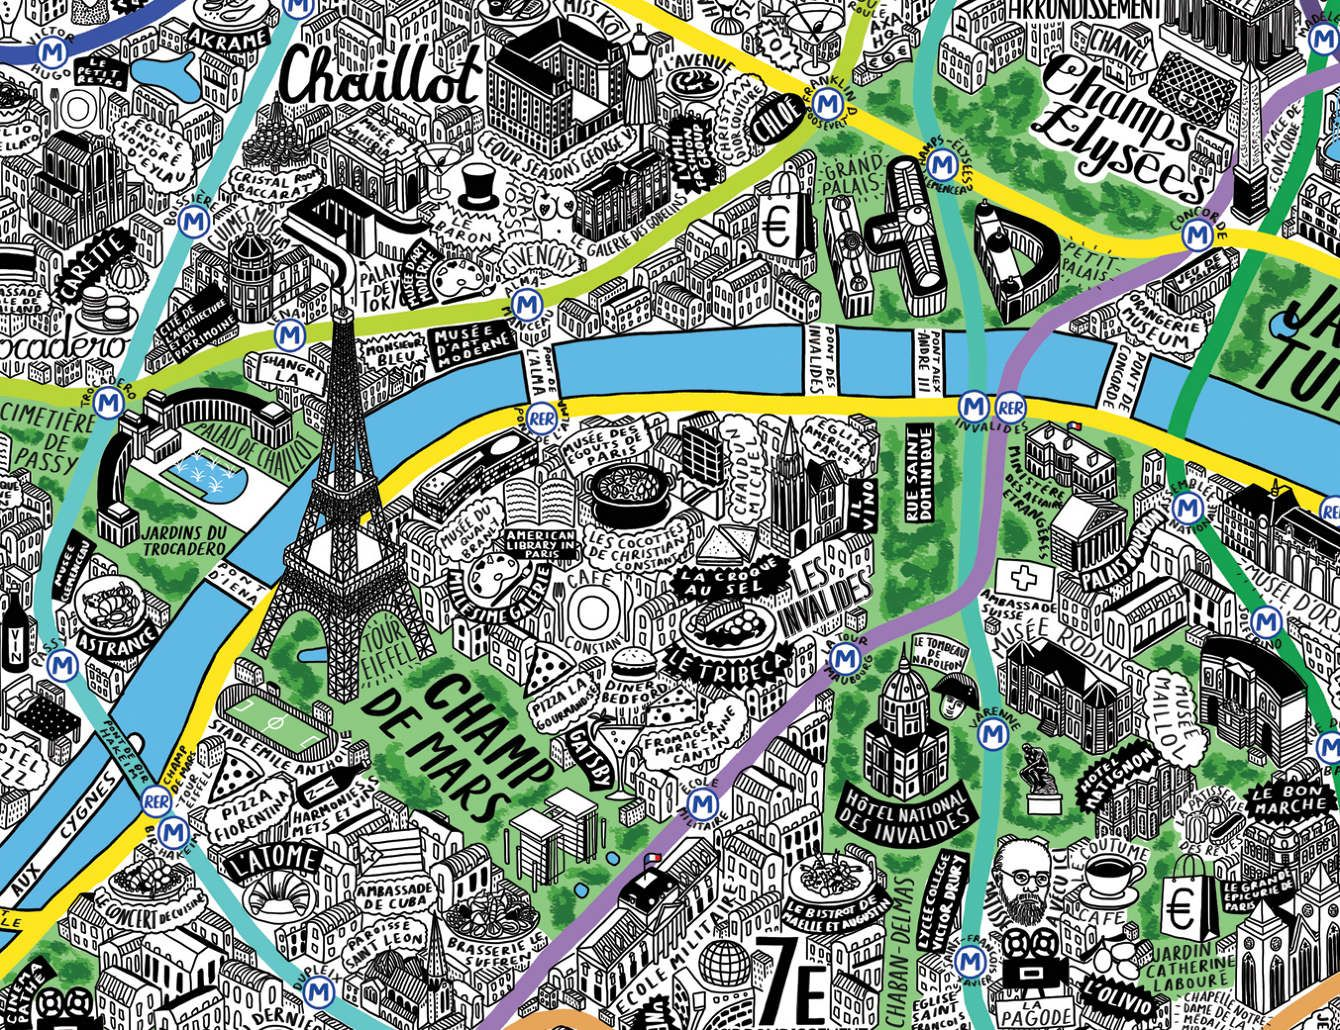 Hand Drawn Map Of Paris Jenni Sparks